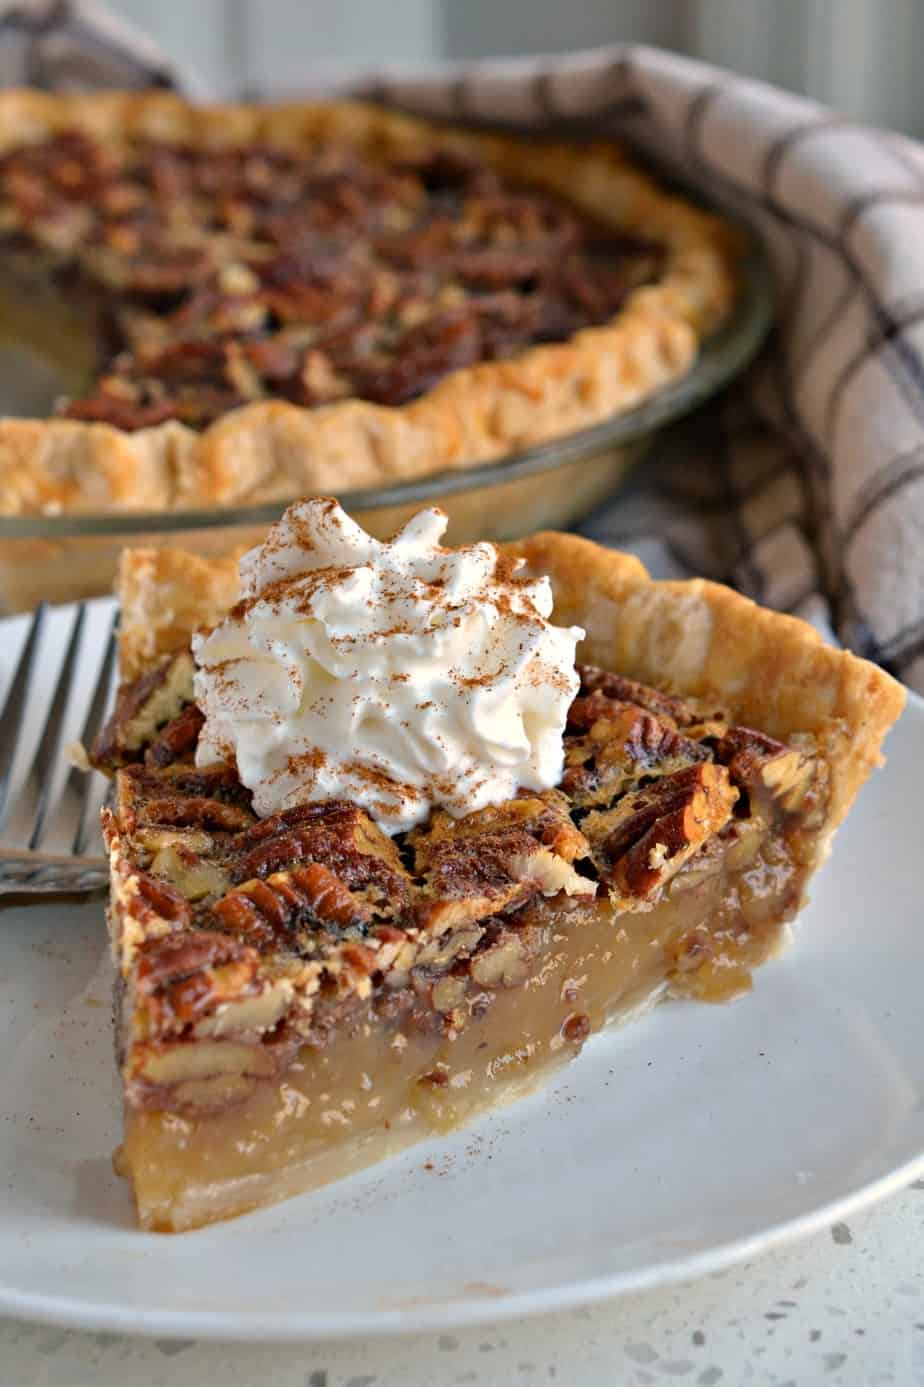 Pecan Pie is such a great Southern treat that is incredibly easy and delicious.